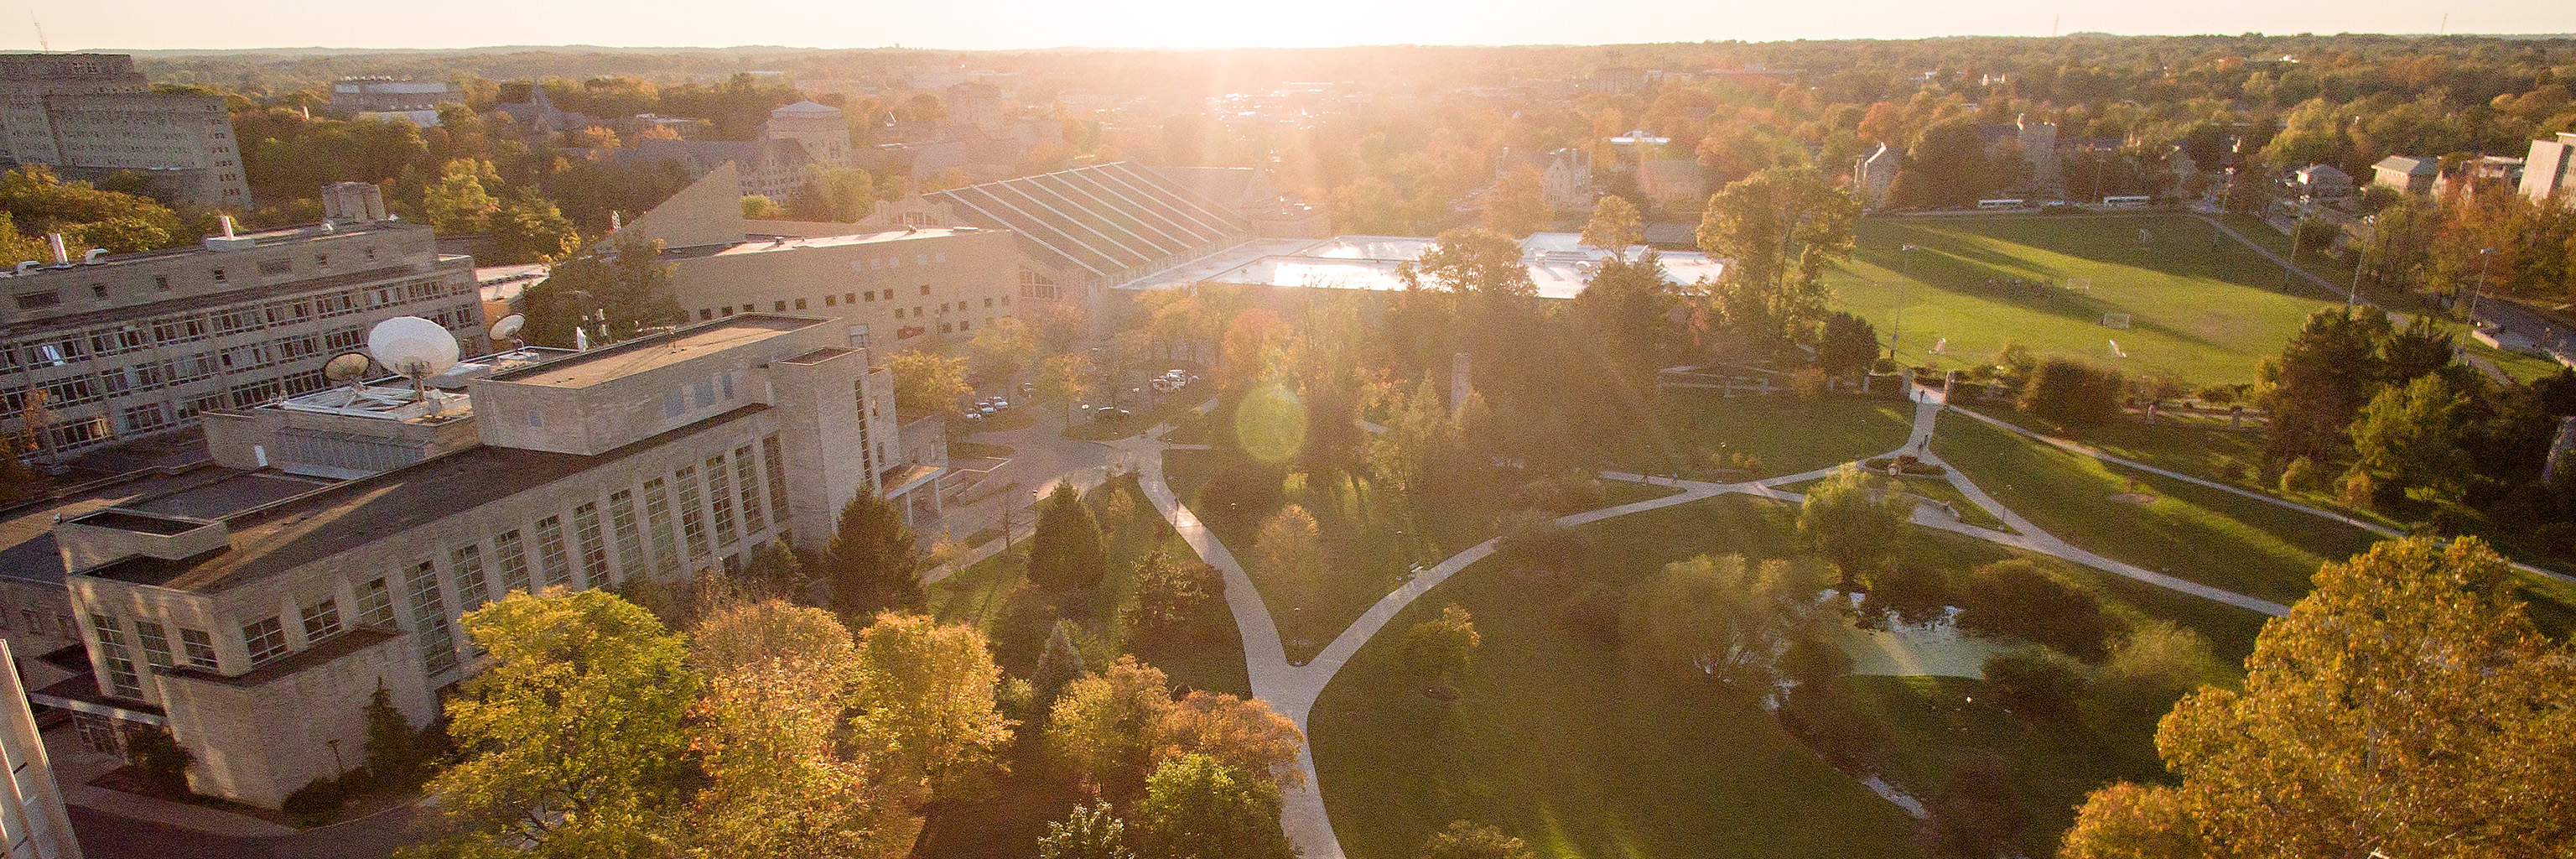 Aerial view of the IU Bloomington campus.